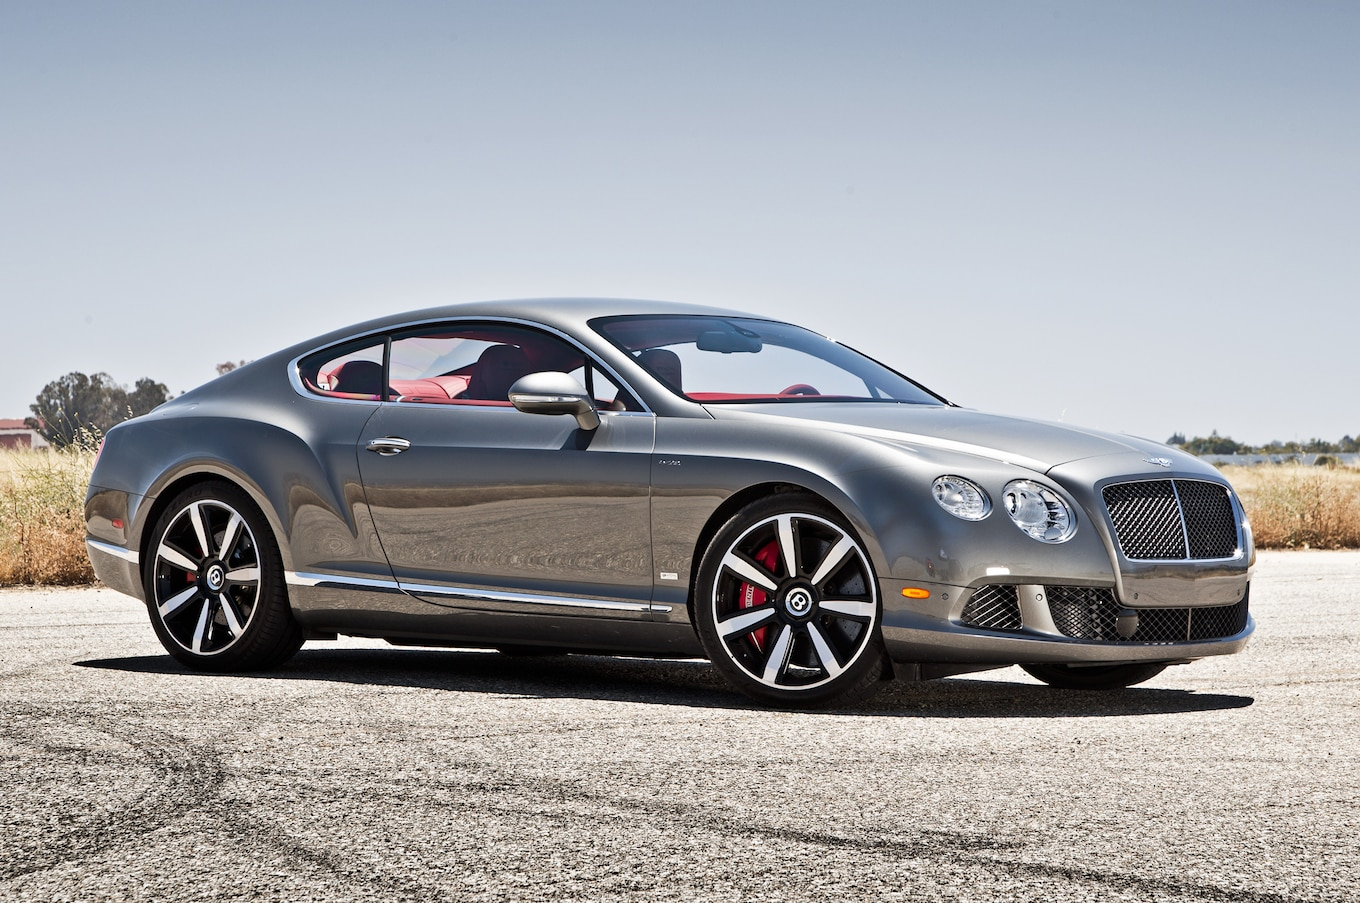 2013 Bentley Continental GT Owners Manual